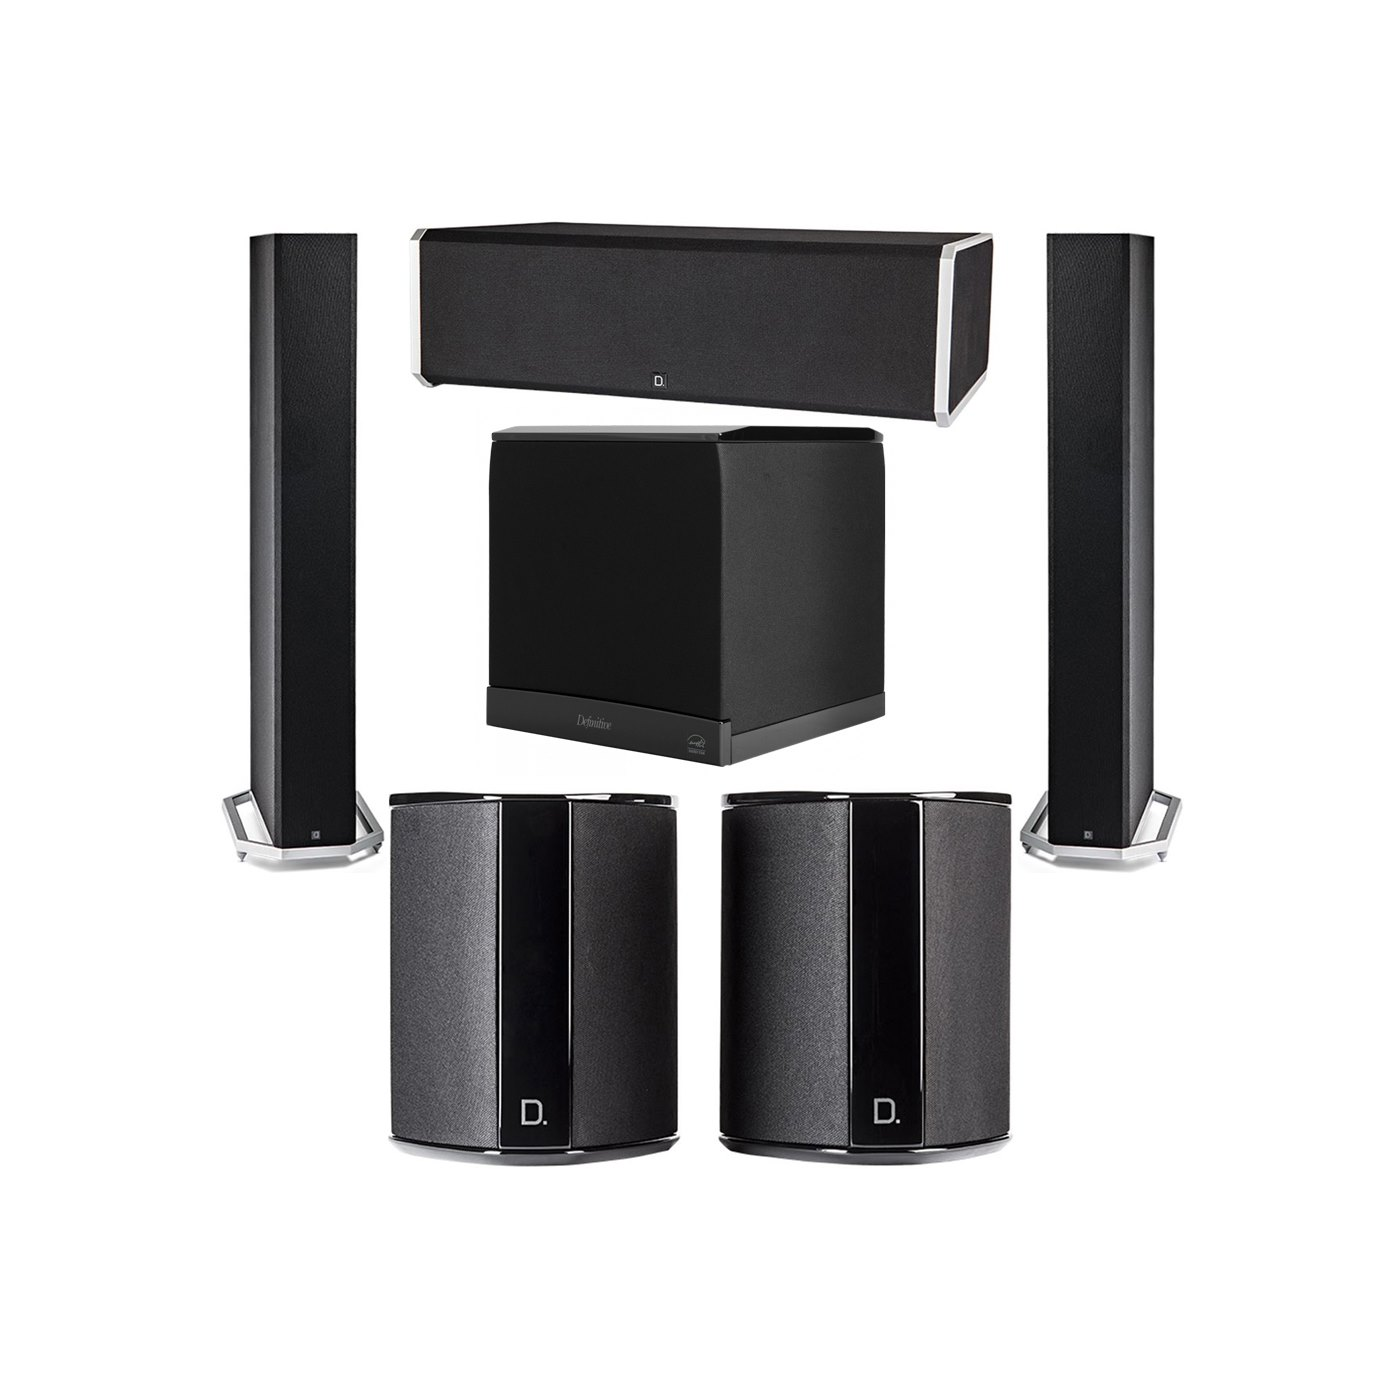 Definitive Technology 5.1 System with 2 BP9060 Tower Speakers, 1 CS9080 Center Channel Speaker, 2 SR9040 Surround Speaker, 1 Definitive Technology SuperCube 6000 Powered Subwoofer